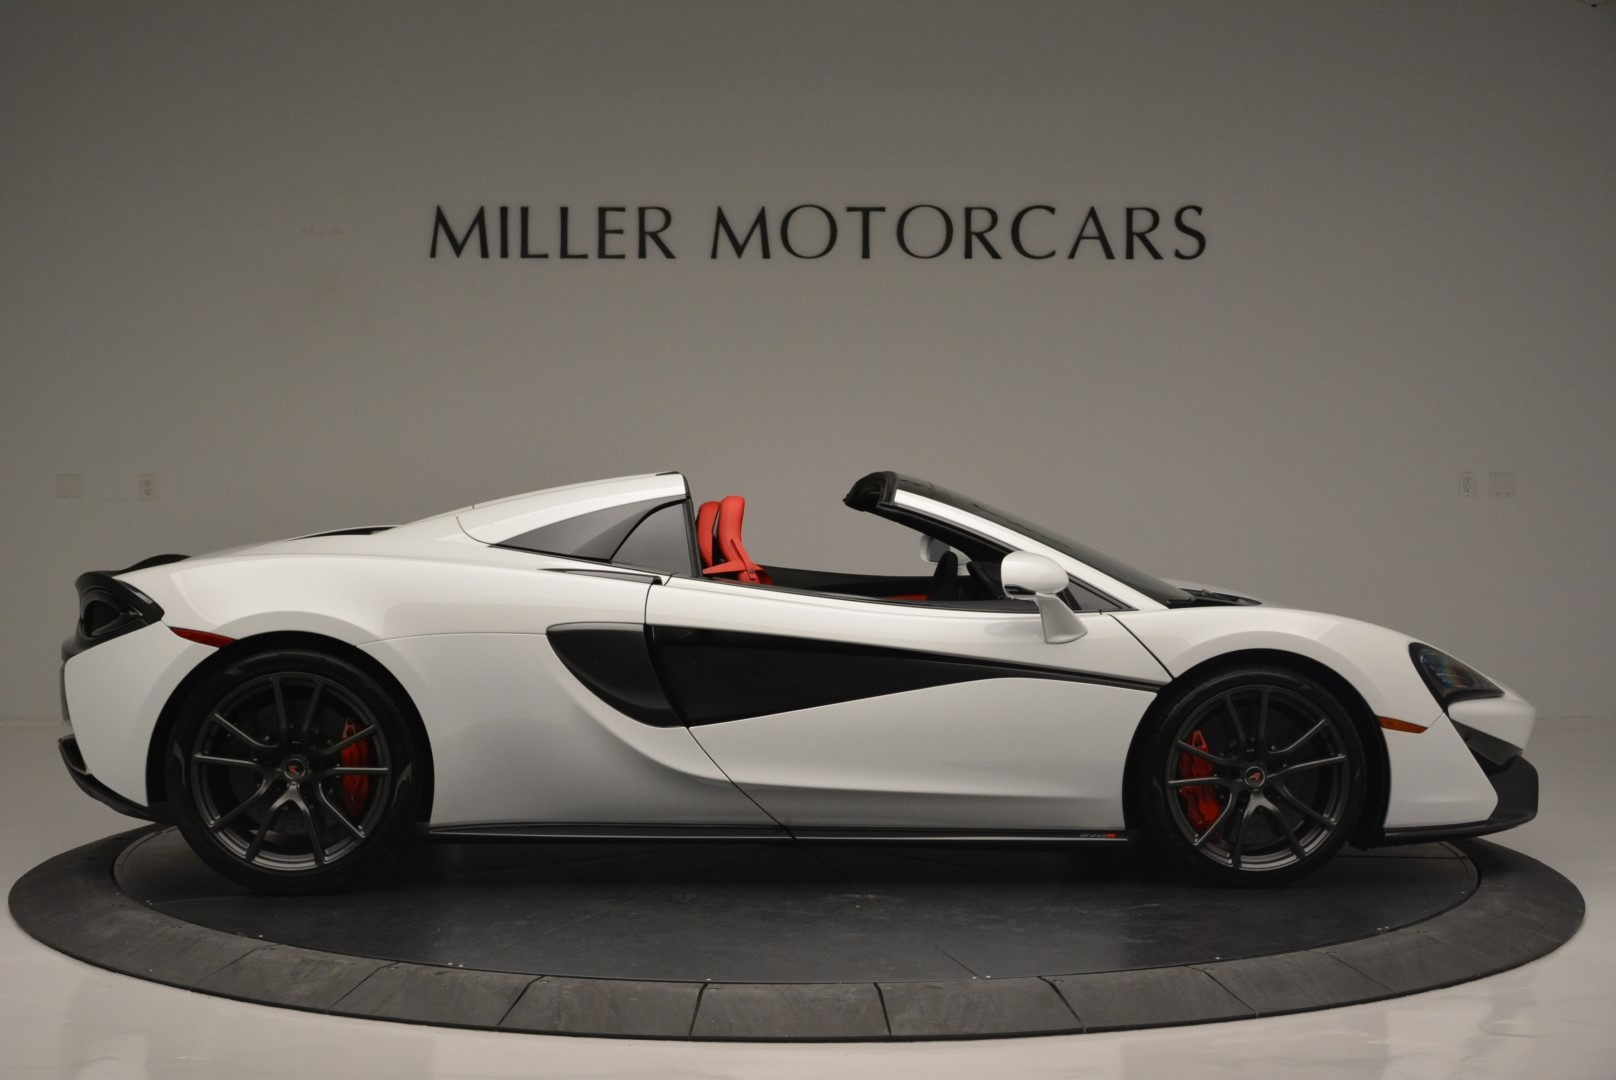 Used 2018 McLaren 570S Spider For Sale In Greenwich, CT. Alfa Romeo of Greenwich, 3149 2341_p9